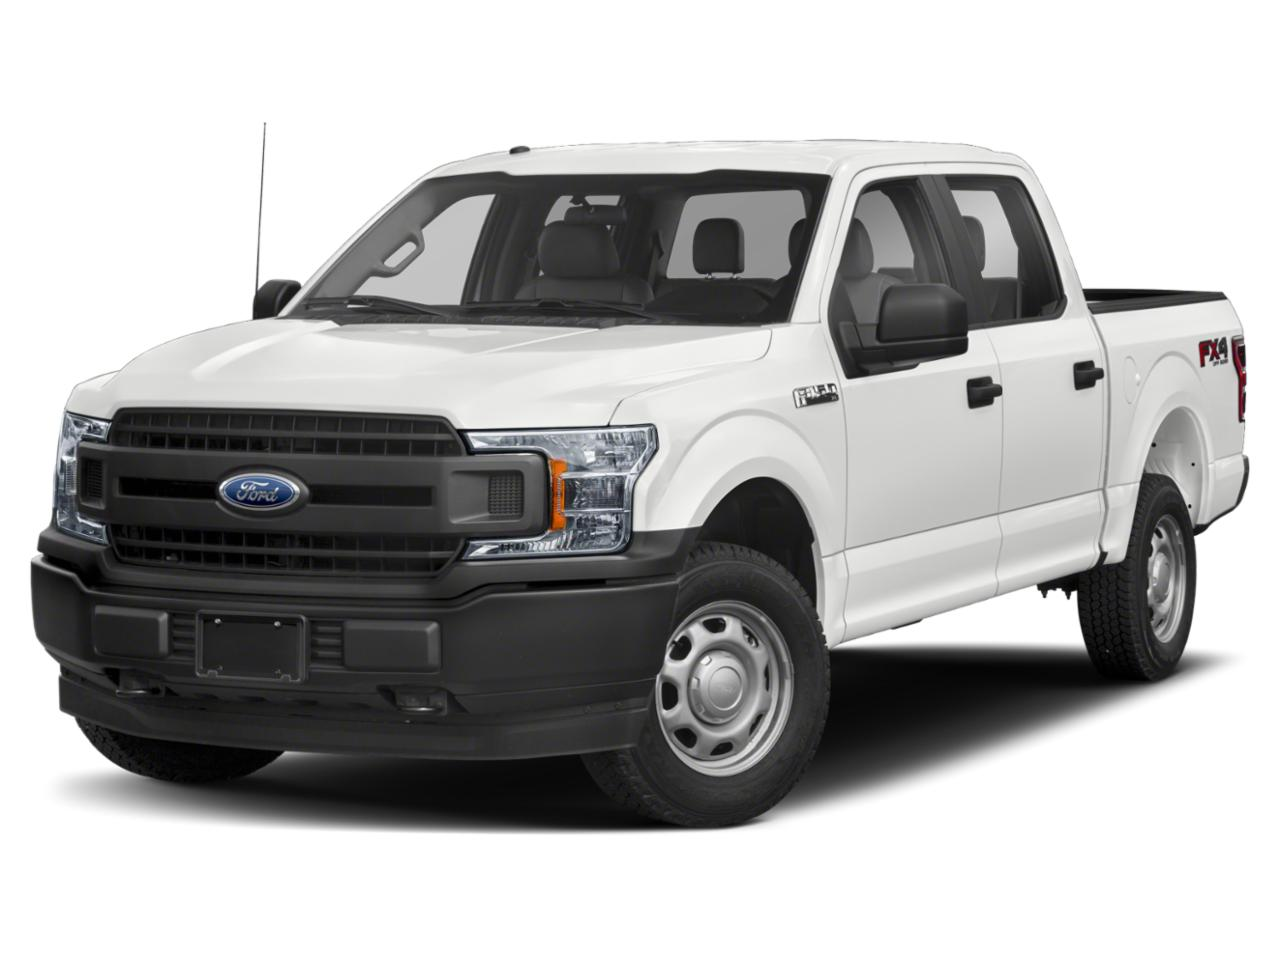 2020 Ford F-150 Vehicle Photo in Baton Rouge, LA 70806